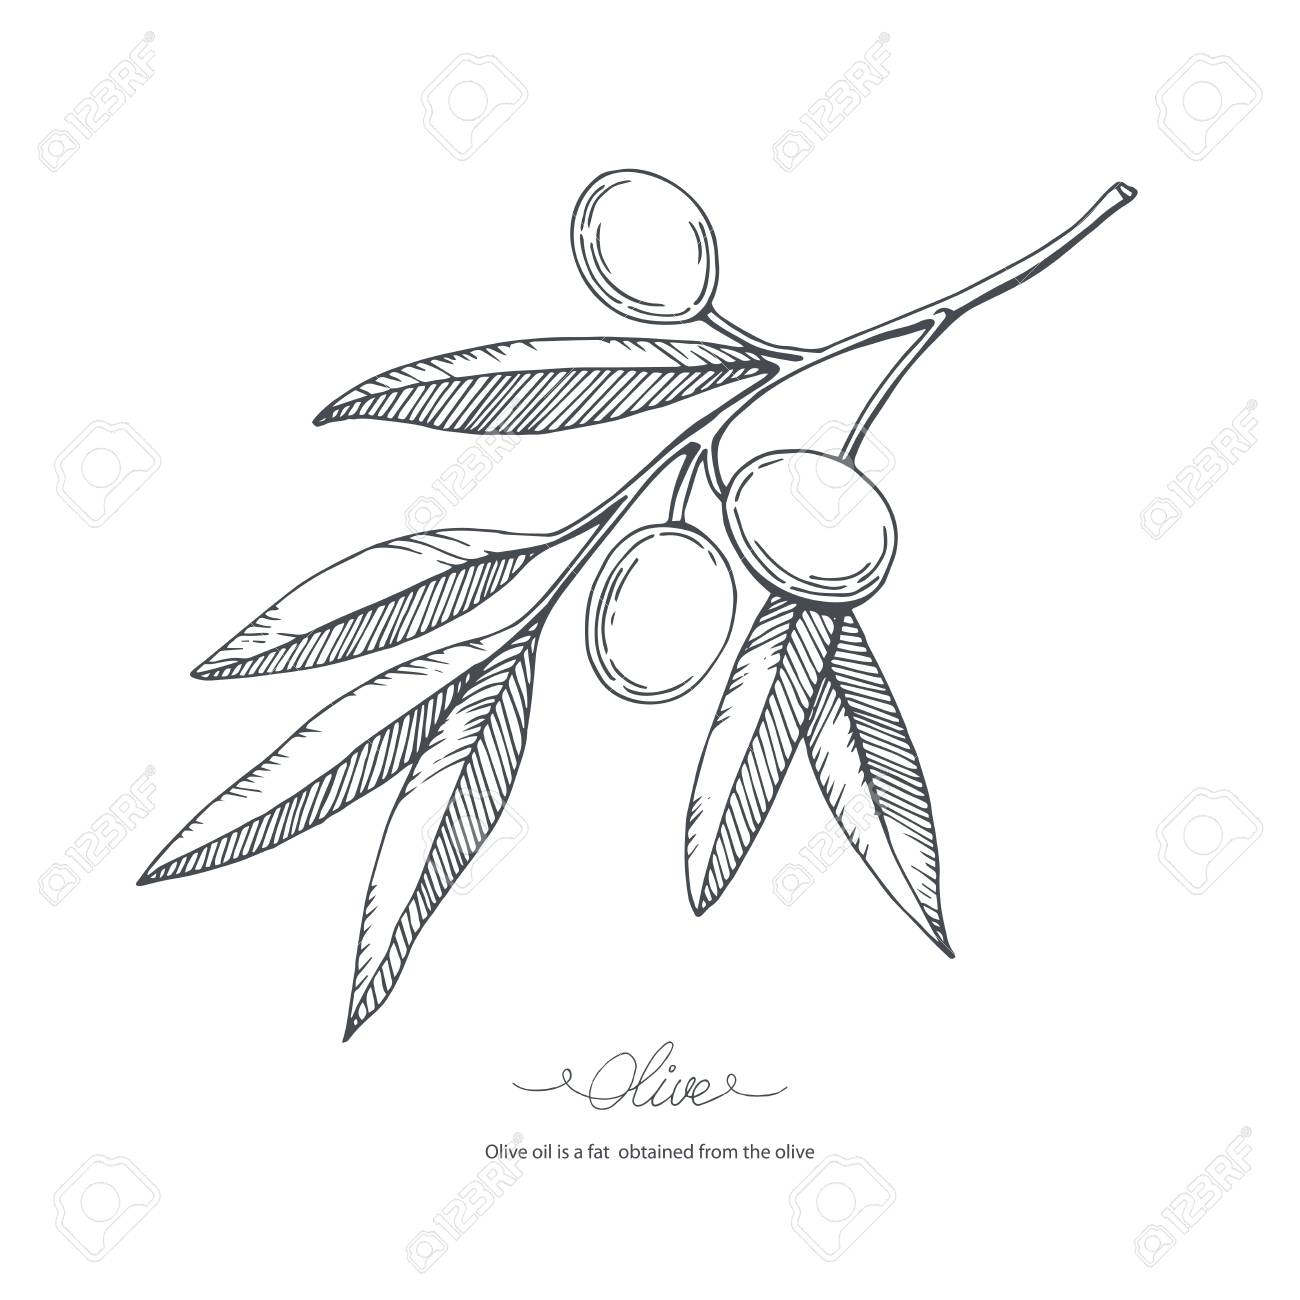 Hand Drawn Olive Branch Vector Sketch Illustration Royalty Free Cliparts Vectors And Stock Illustration Image 69812371